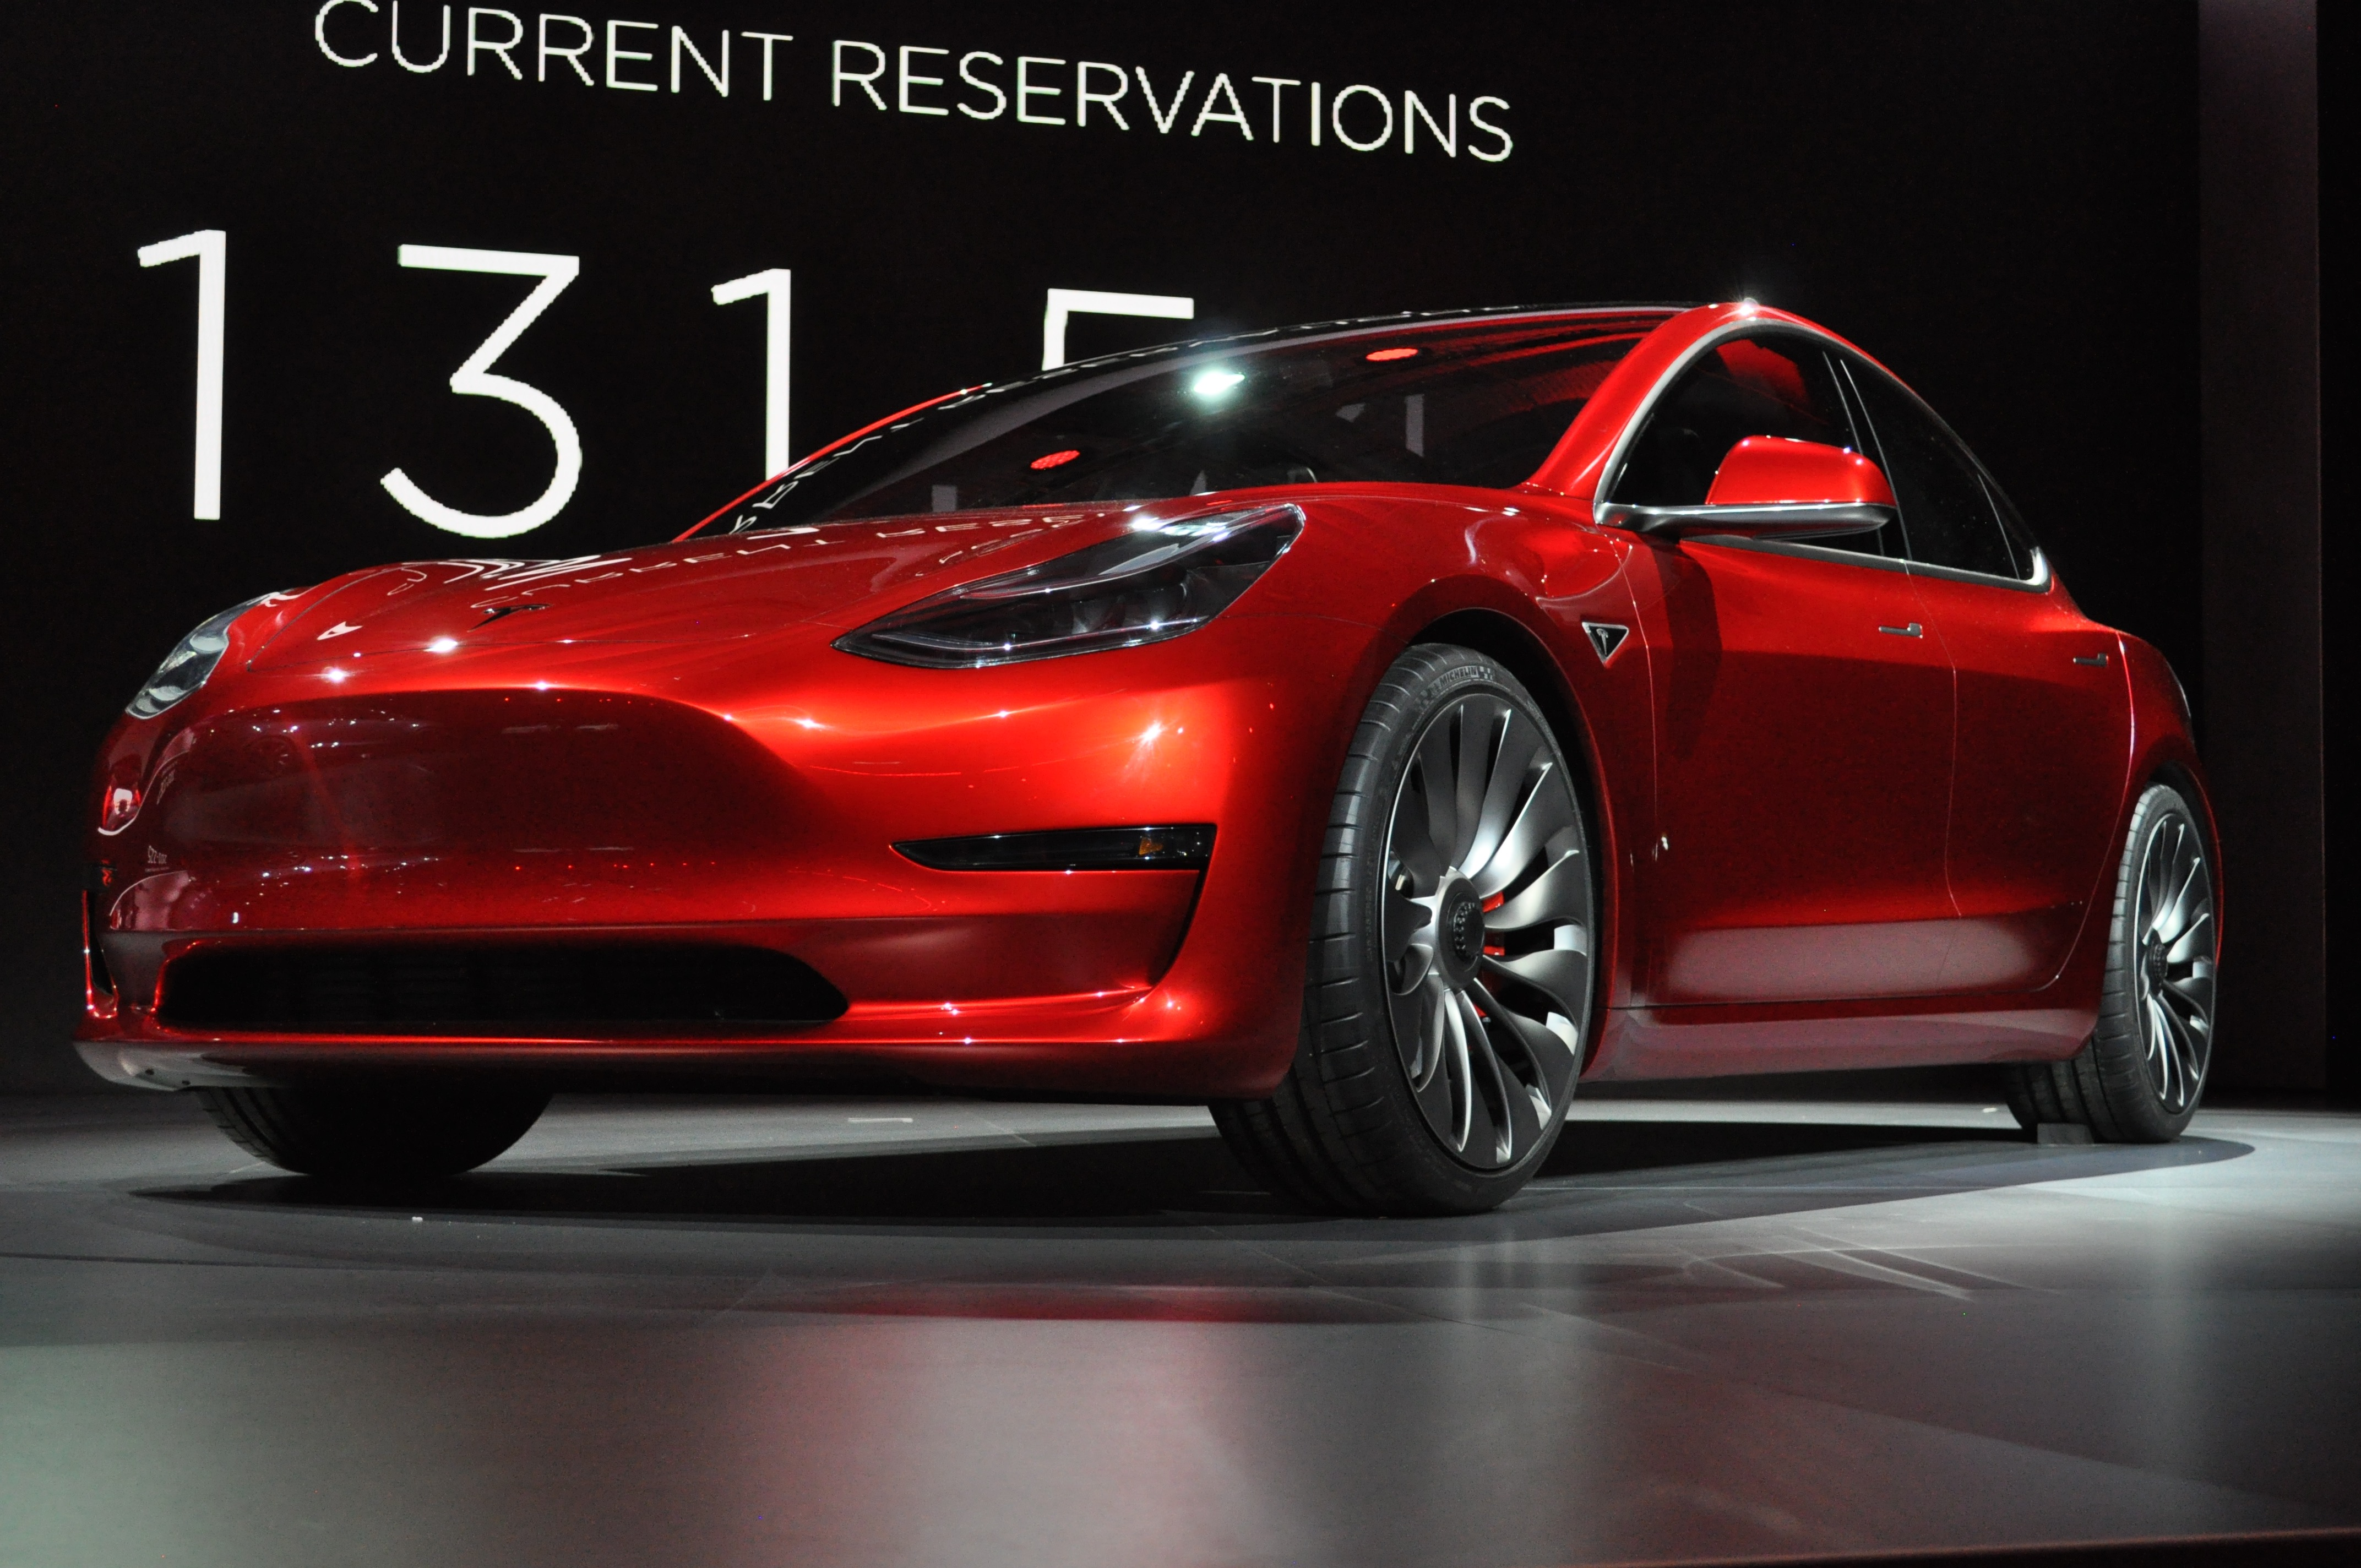 Here are 14 actual pictures of Tesla's $35,000 Model 3